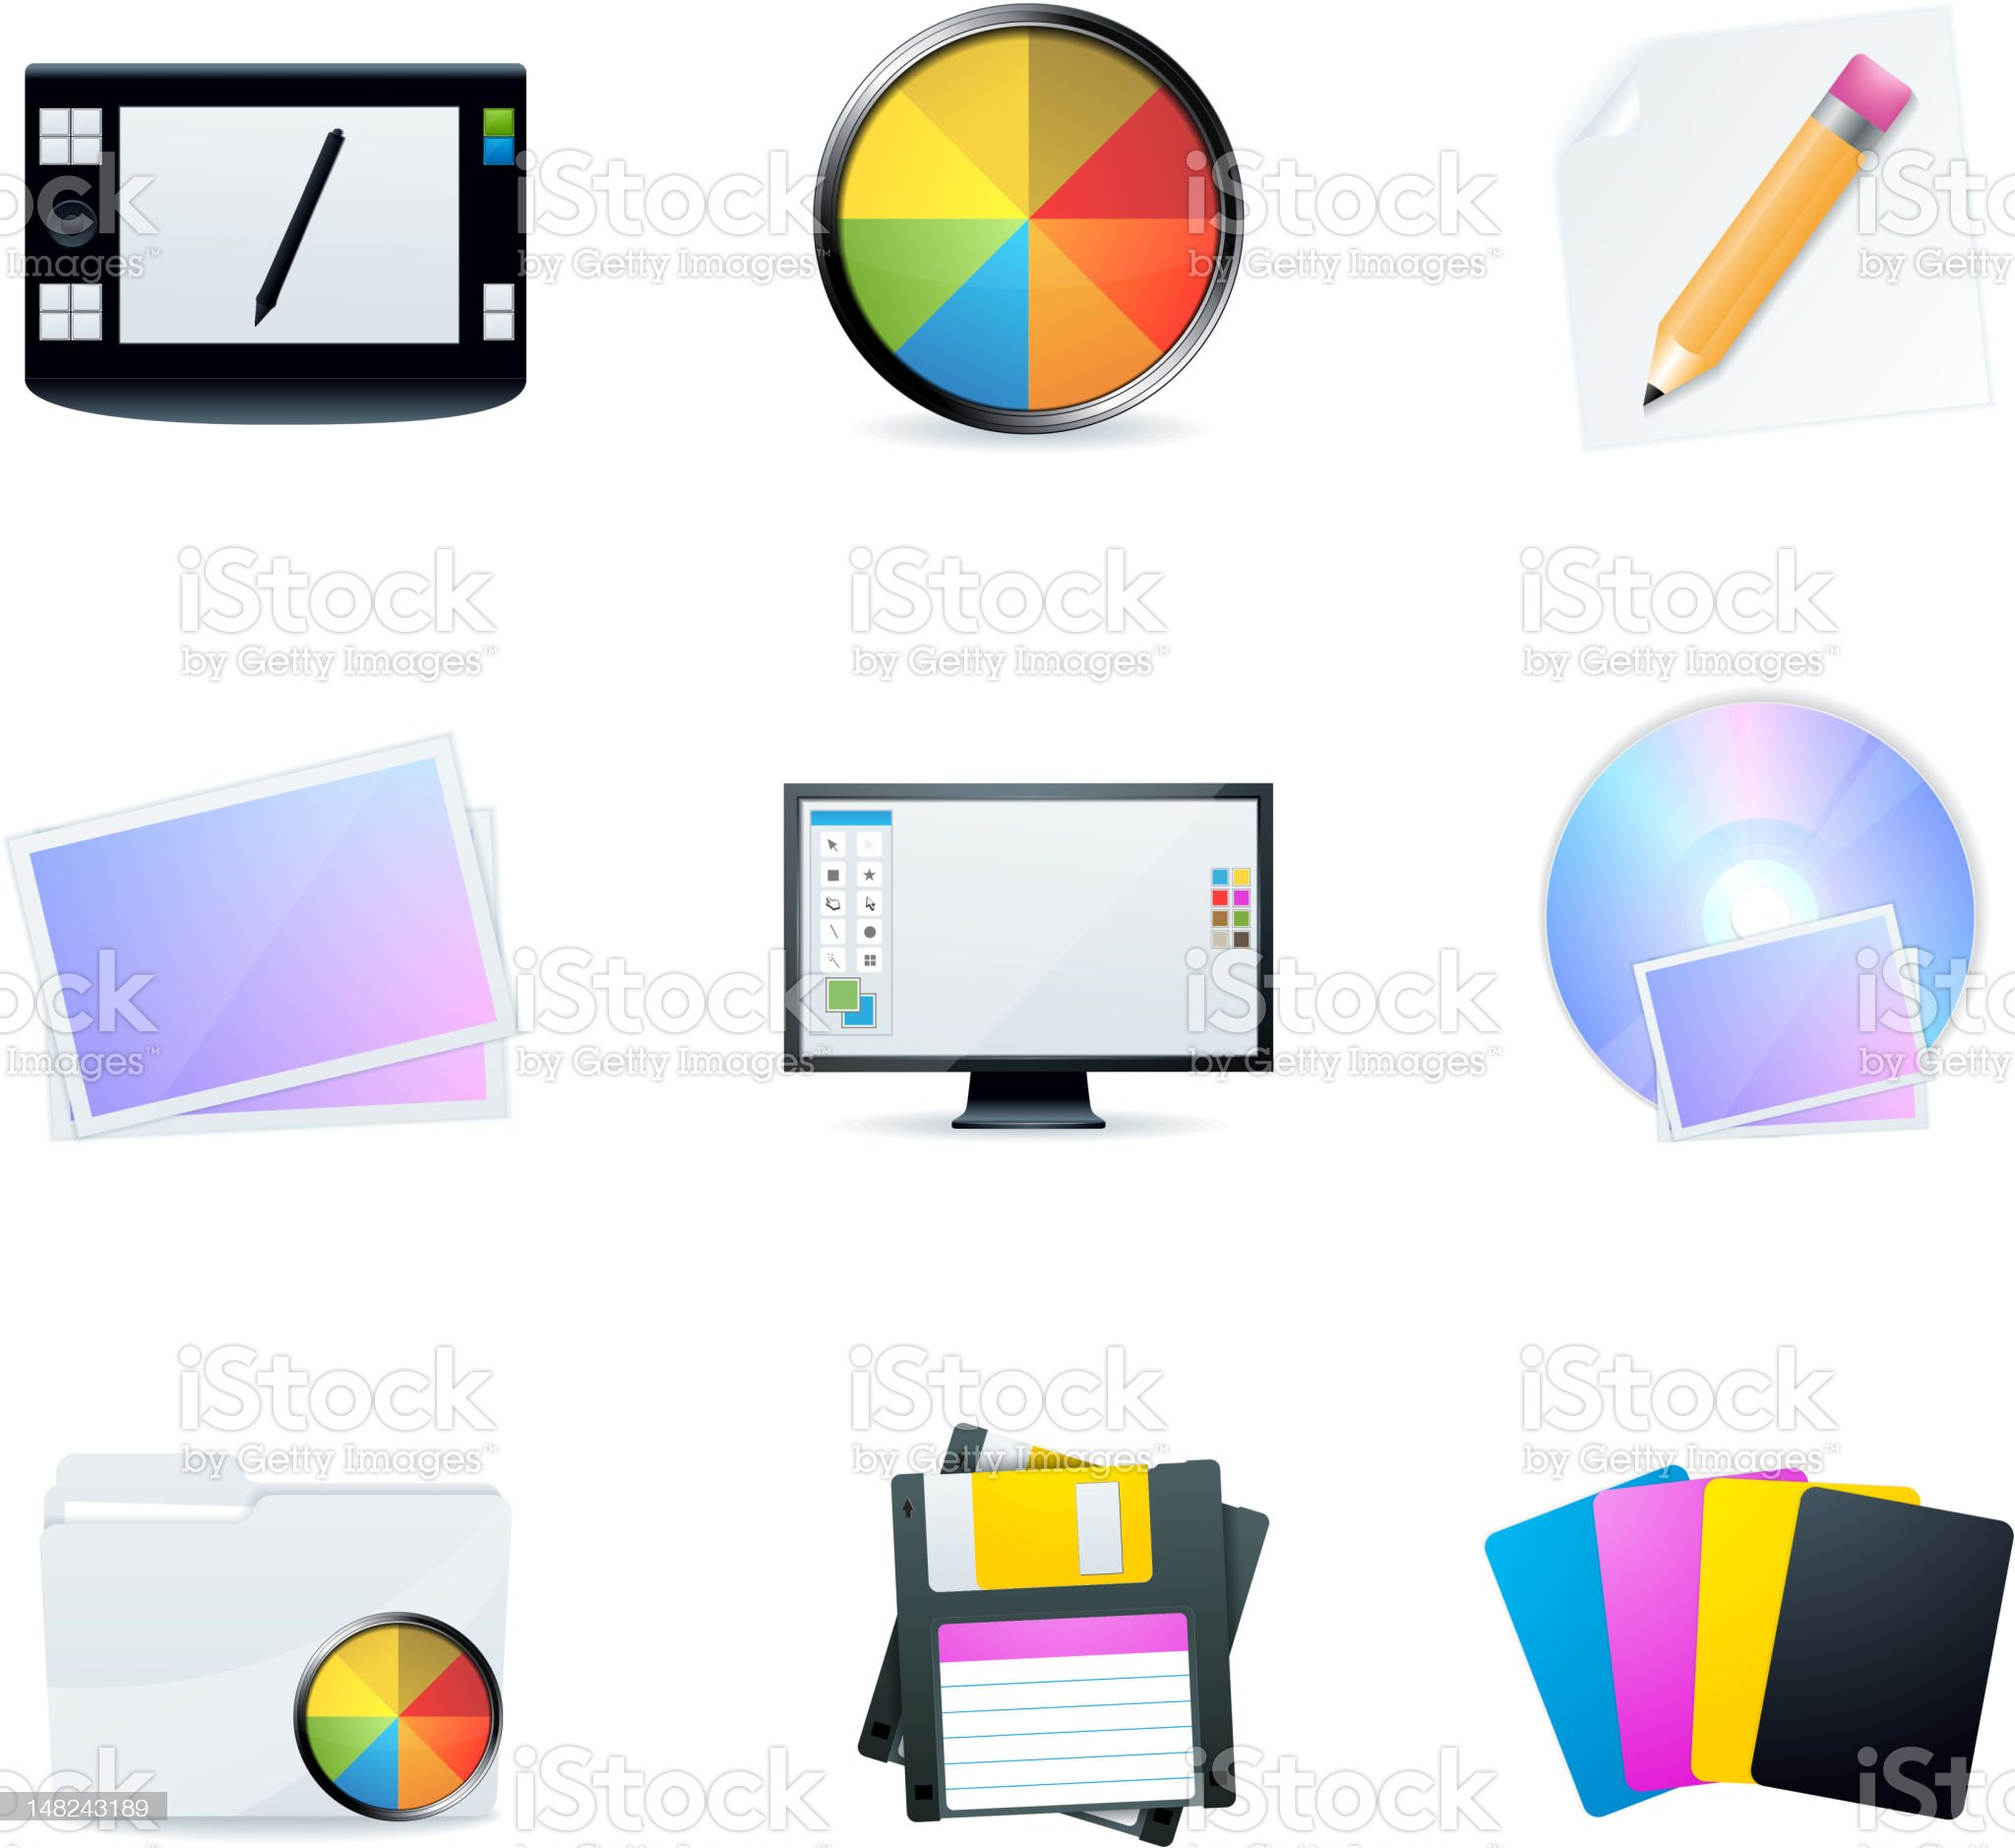 Graphic design icons royalty-free stock photo